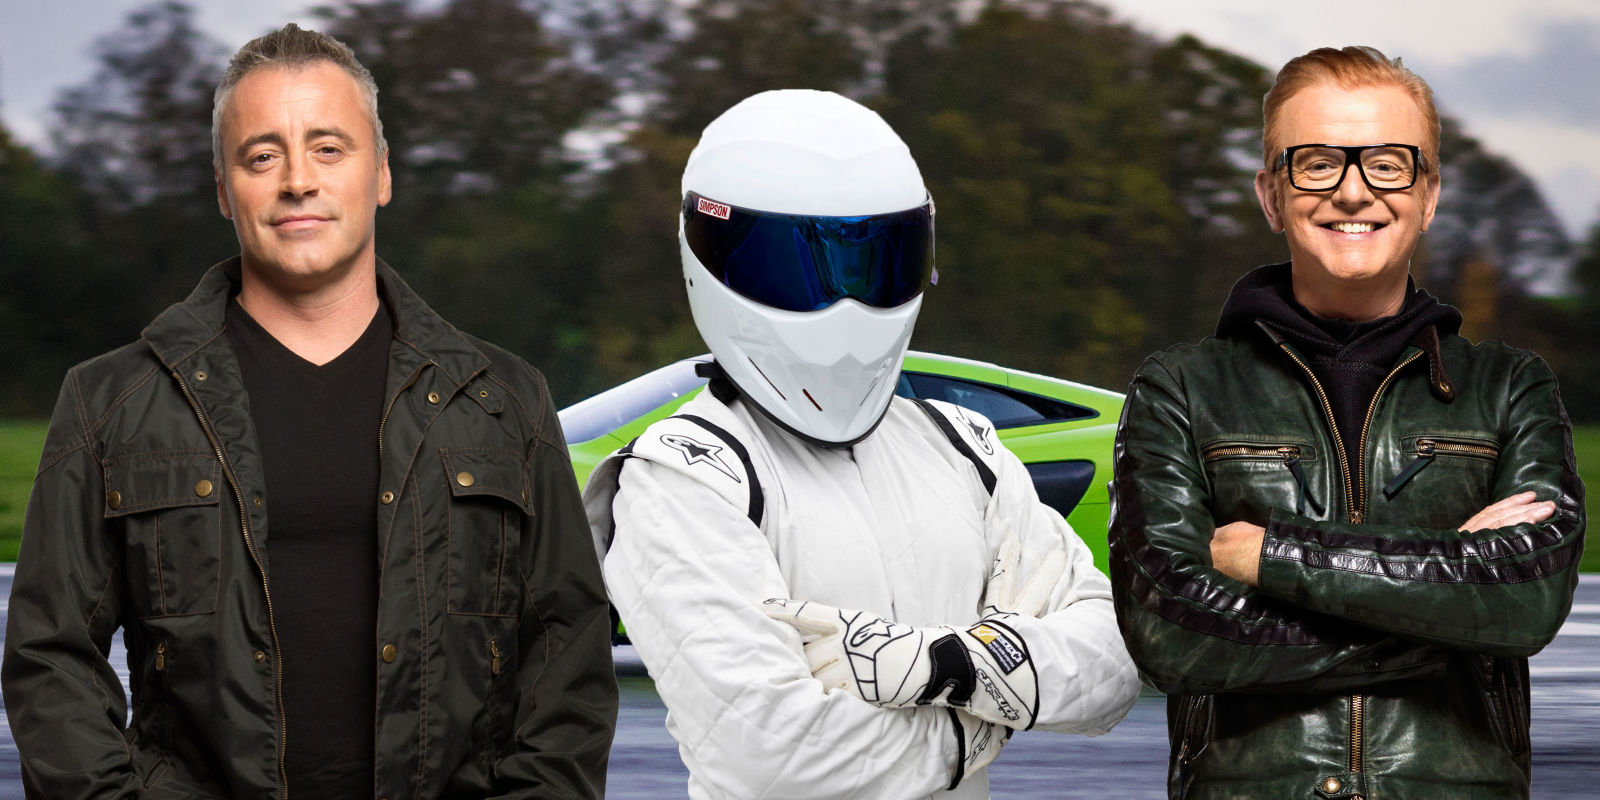 Profenetwork Top Gear